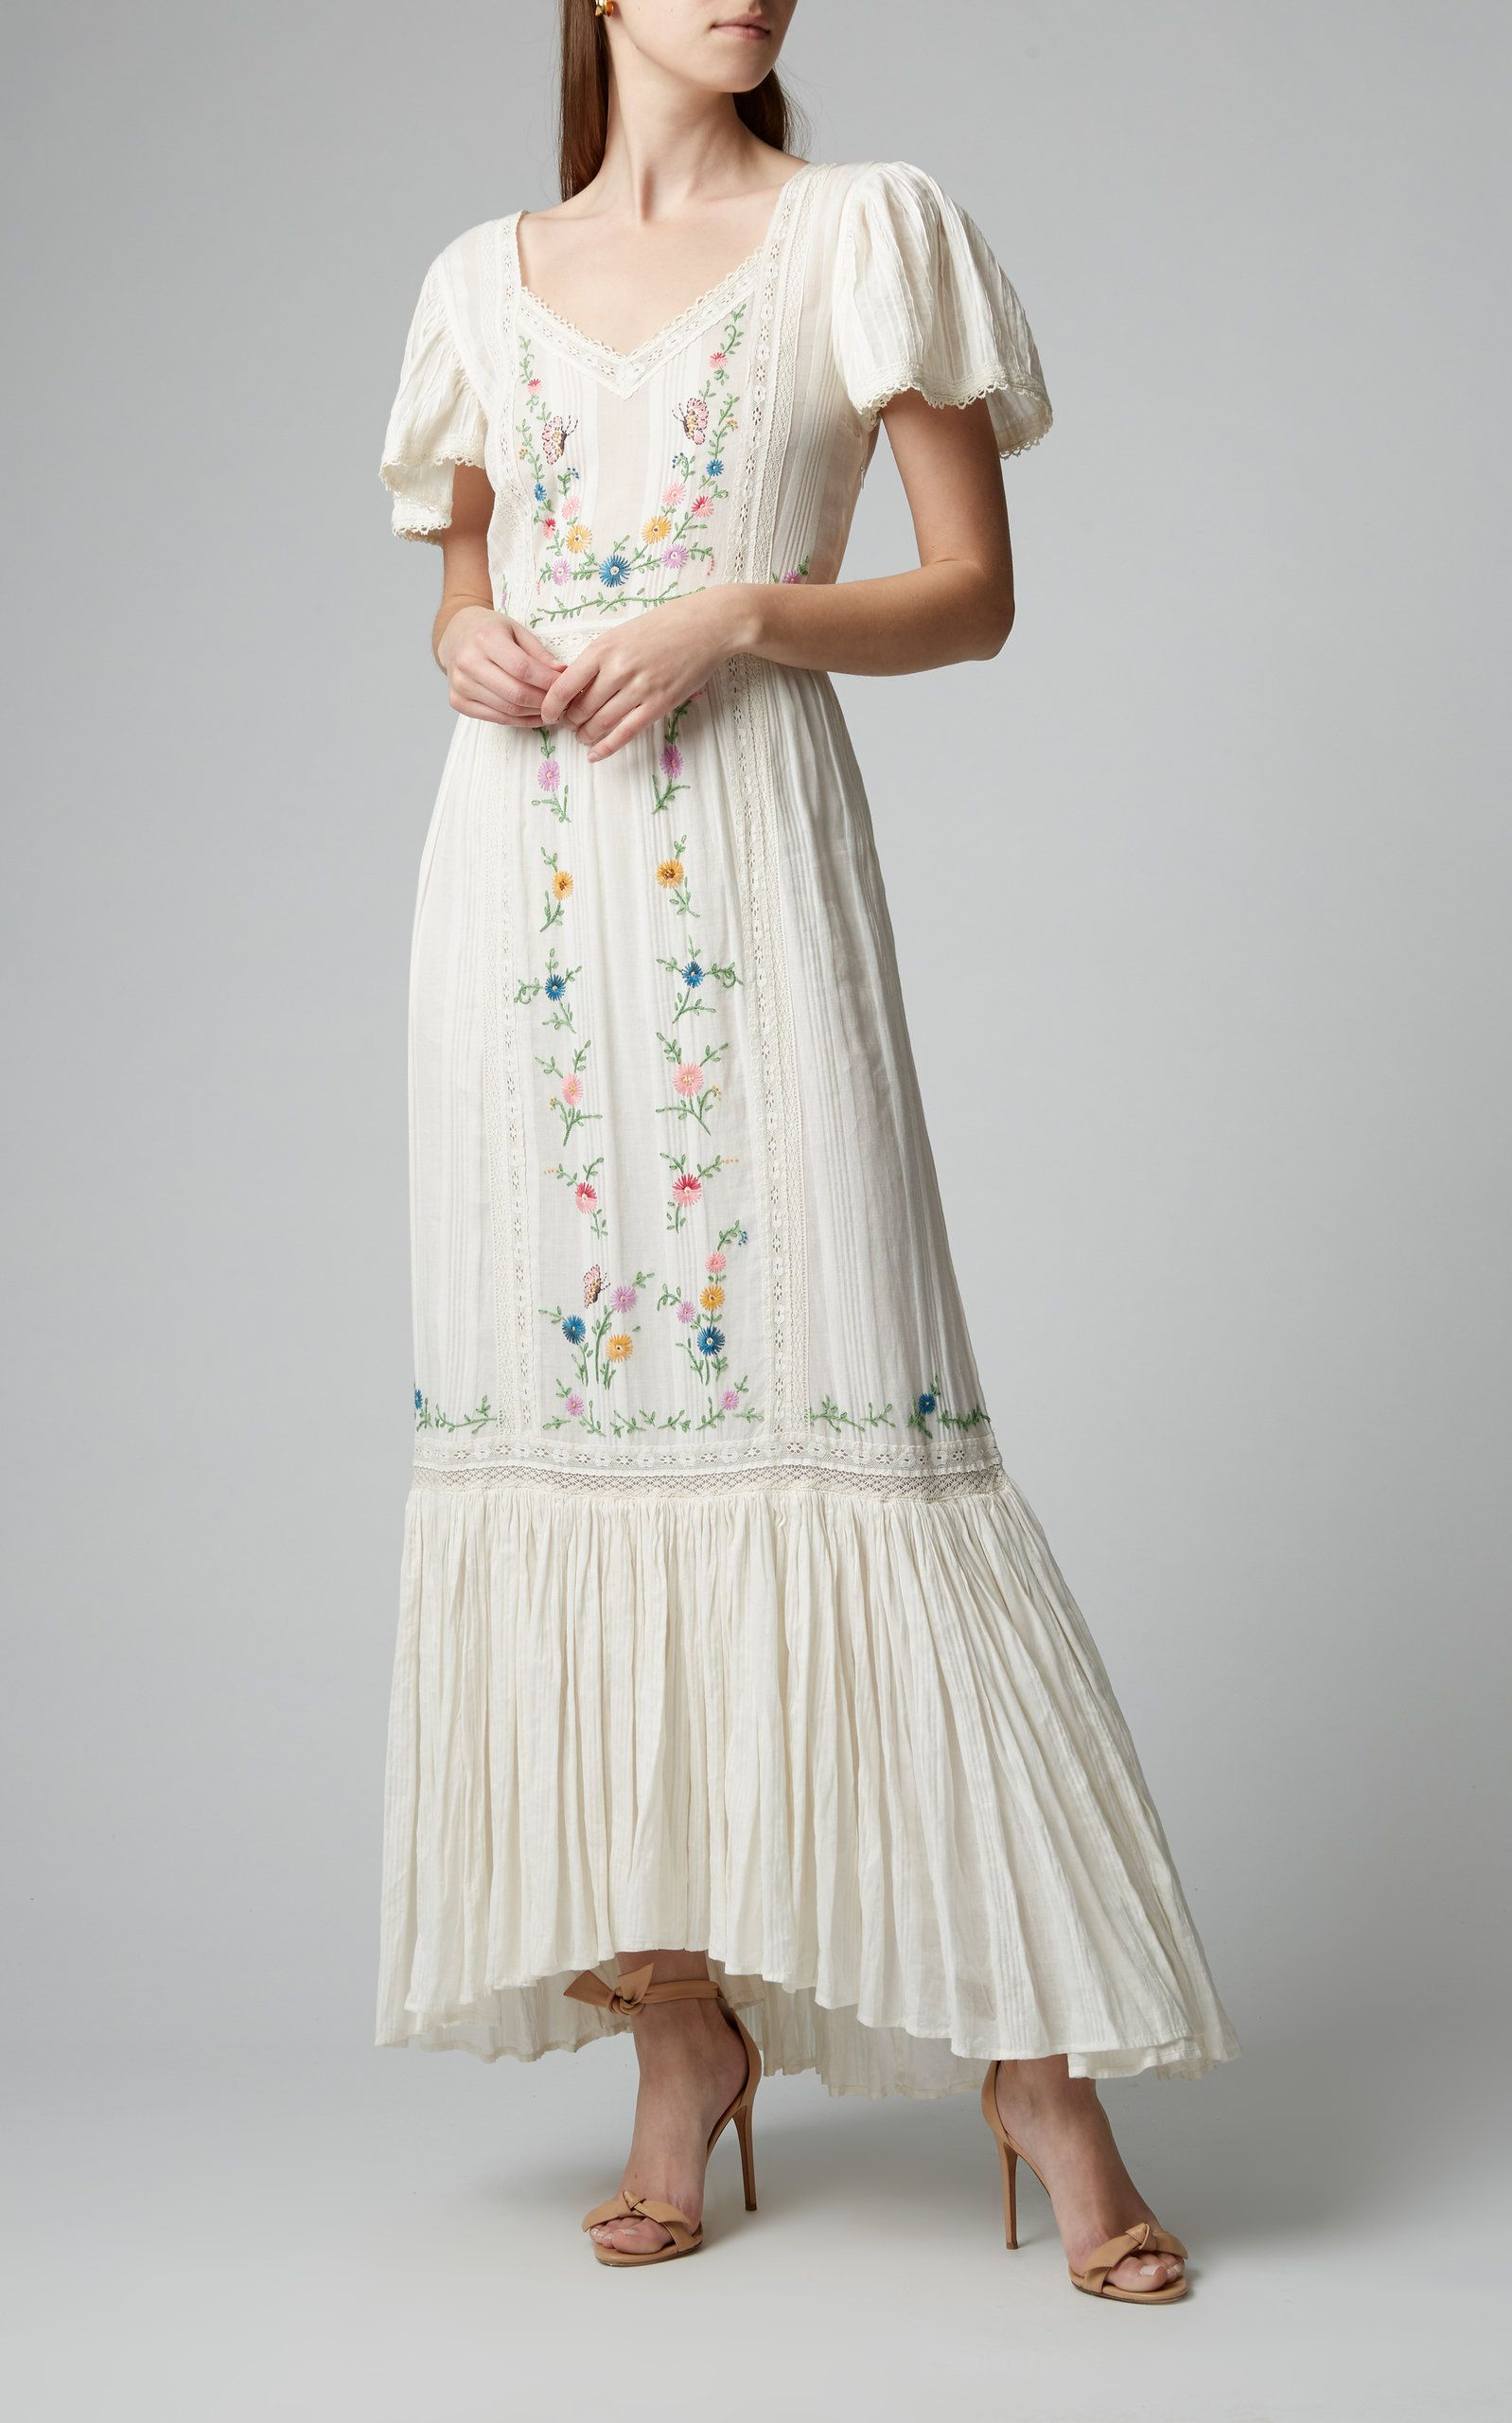 LoveShackFancy Damia Floral-Embroidered Cotton Maxi Dress Size: 0 #dressesforengagementparty